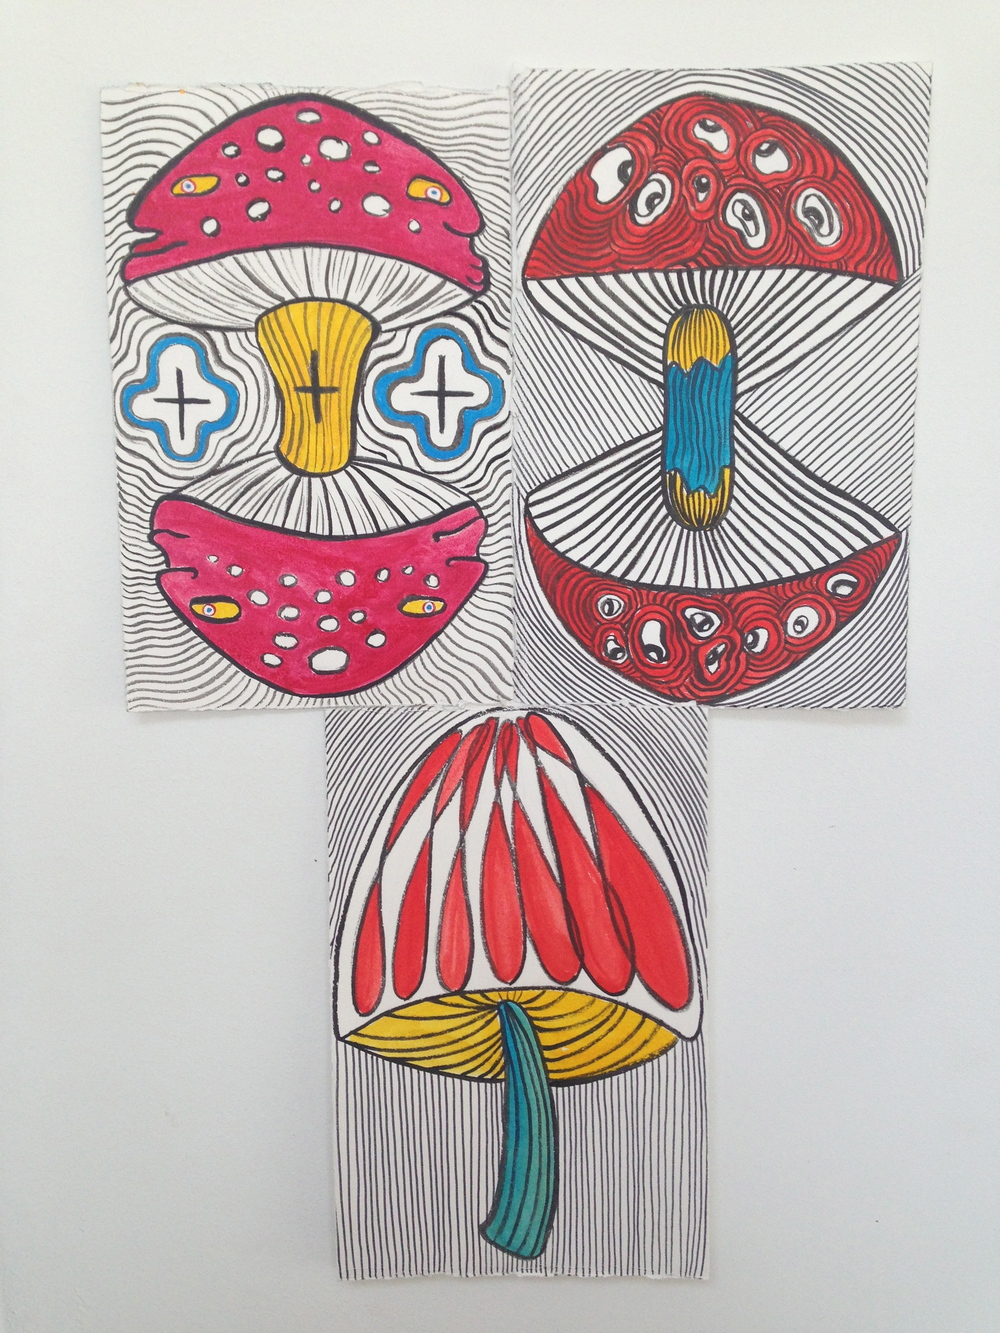 """""""Shrooms""""  7.5"""" x 11""""  Ink and watercolor on paper  NFS - In the collection of Will Sheldon & Taylor Trabulus"""